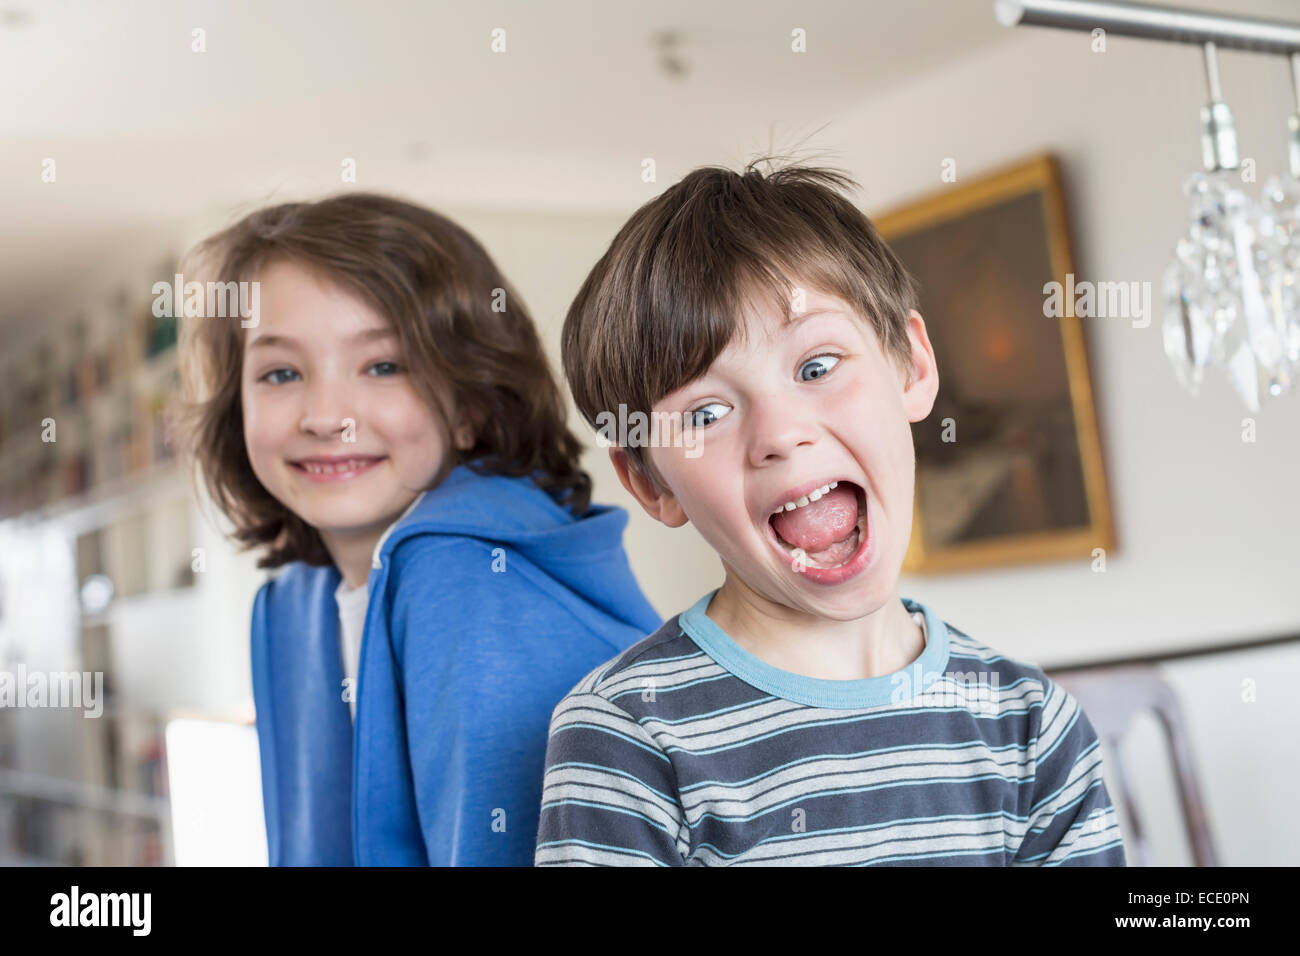 Boy making funny faces while girl in background - Stock Image